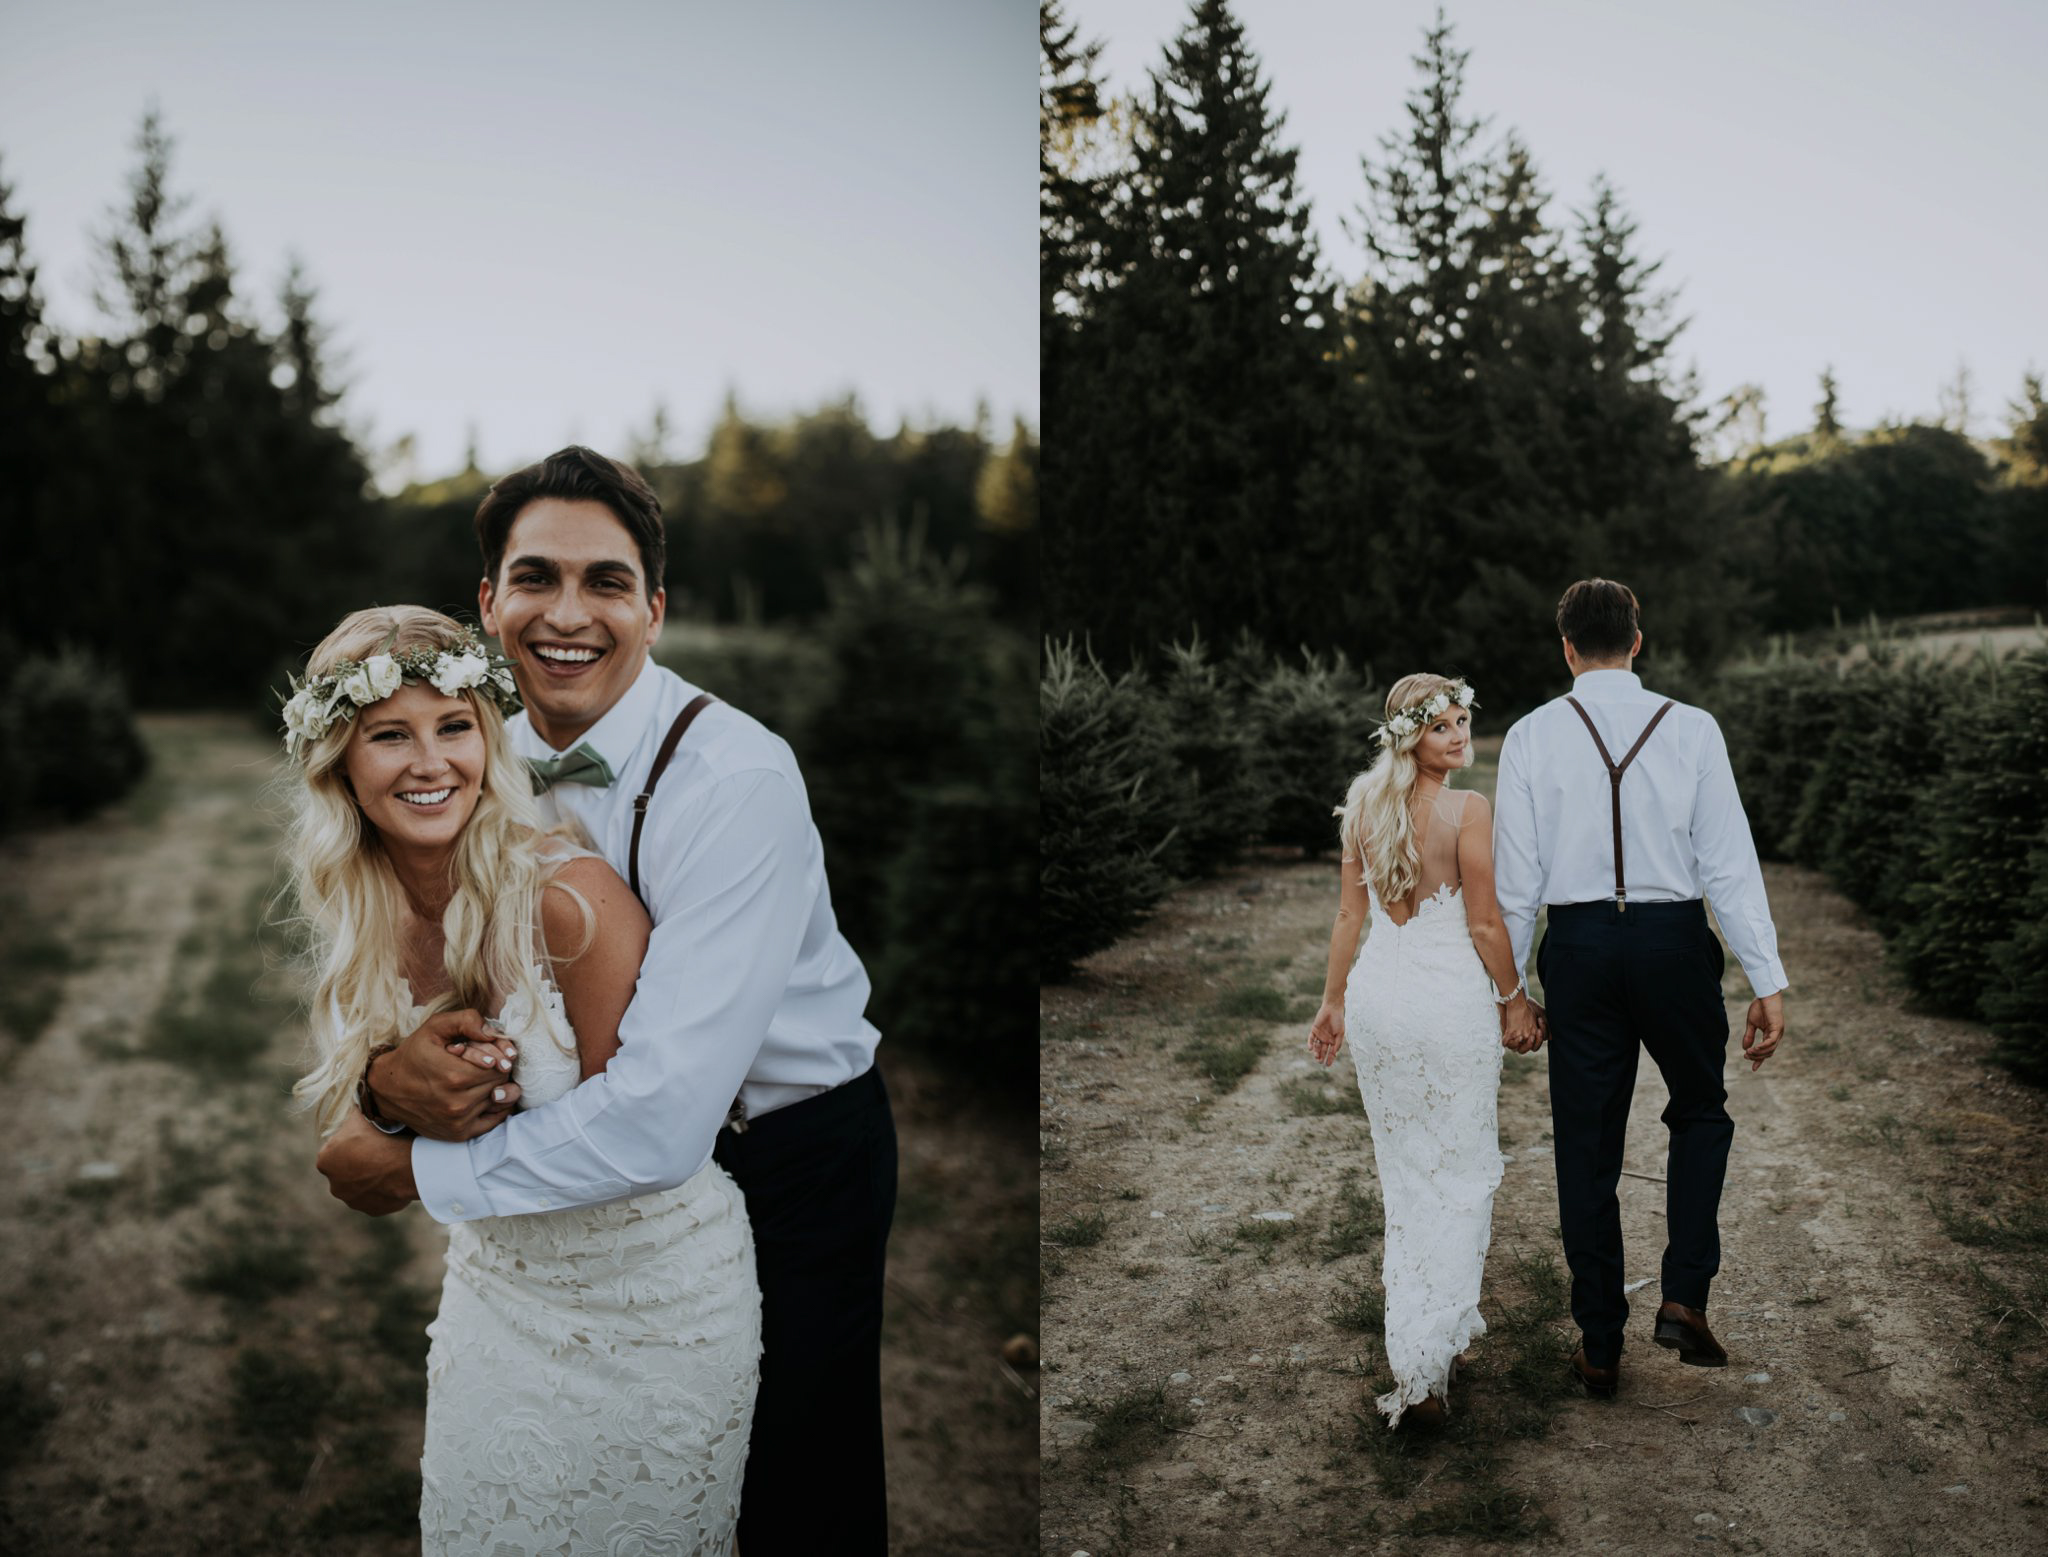 trinity-tree-farm-issaquah-washington-wedding-seattle-lifestyle-photographer-caitlyn-nikula-photography-98.jpg